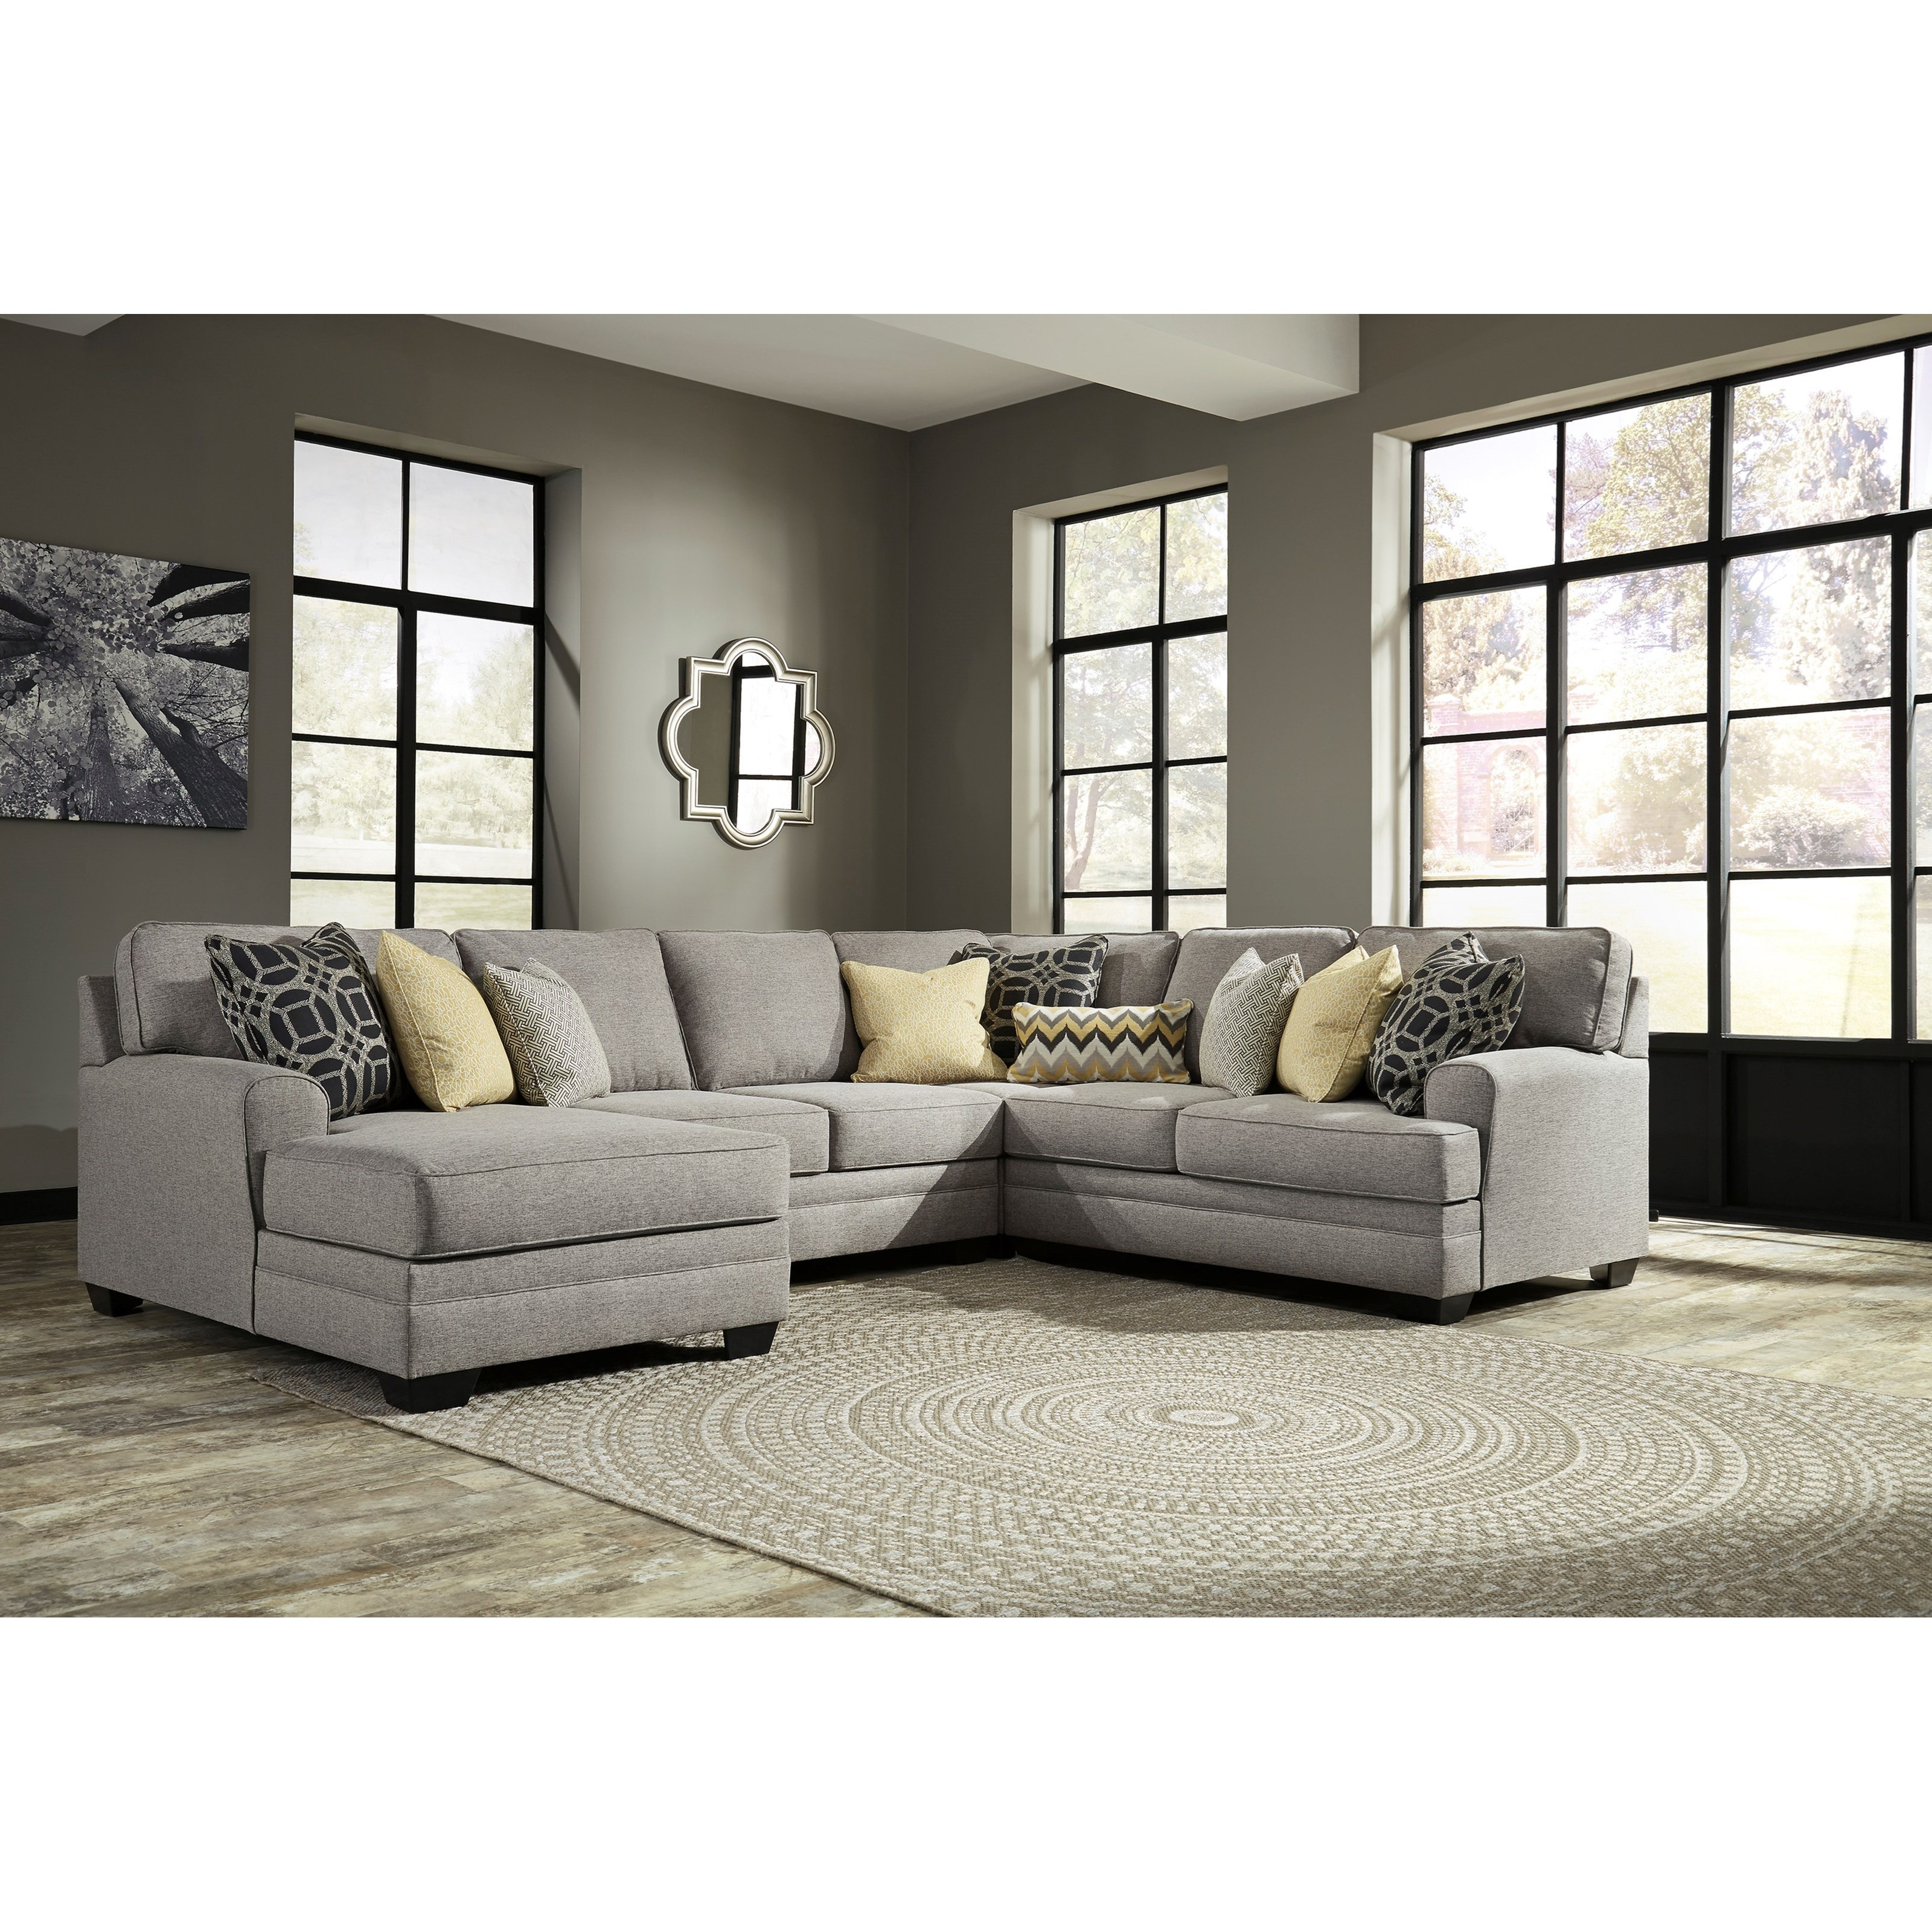 Benchcraft by Ashley Cresson Contemporary 4-Piece Sectional with Chaise - Coconis Furniture u0026 Mattress 1st - Sectional Sofas  sc 1 st  Coconis Furniture : 4 piece sectional sofa with chaise - Sectionals, Sofas & Couches